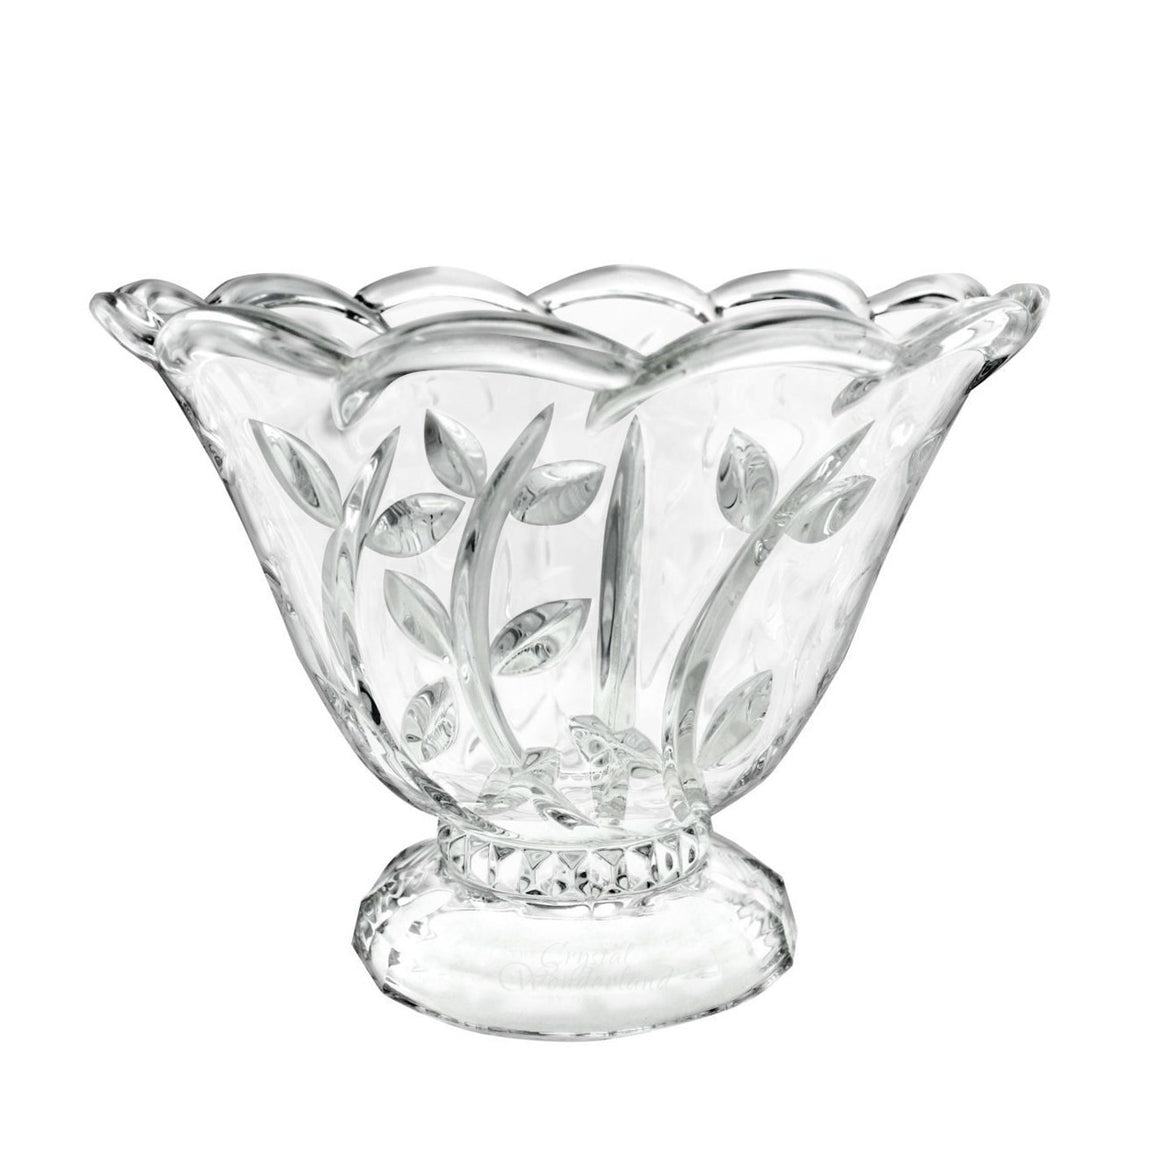 Fiona Crystal Footed Bowl - The Crystal Wonderland